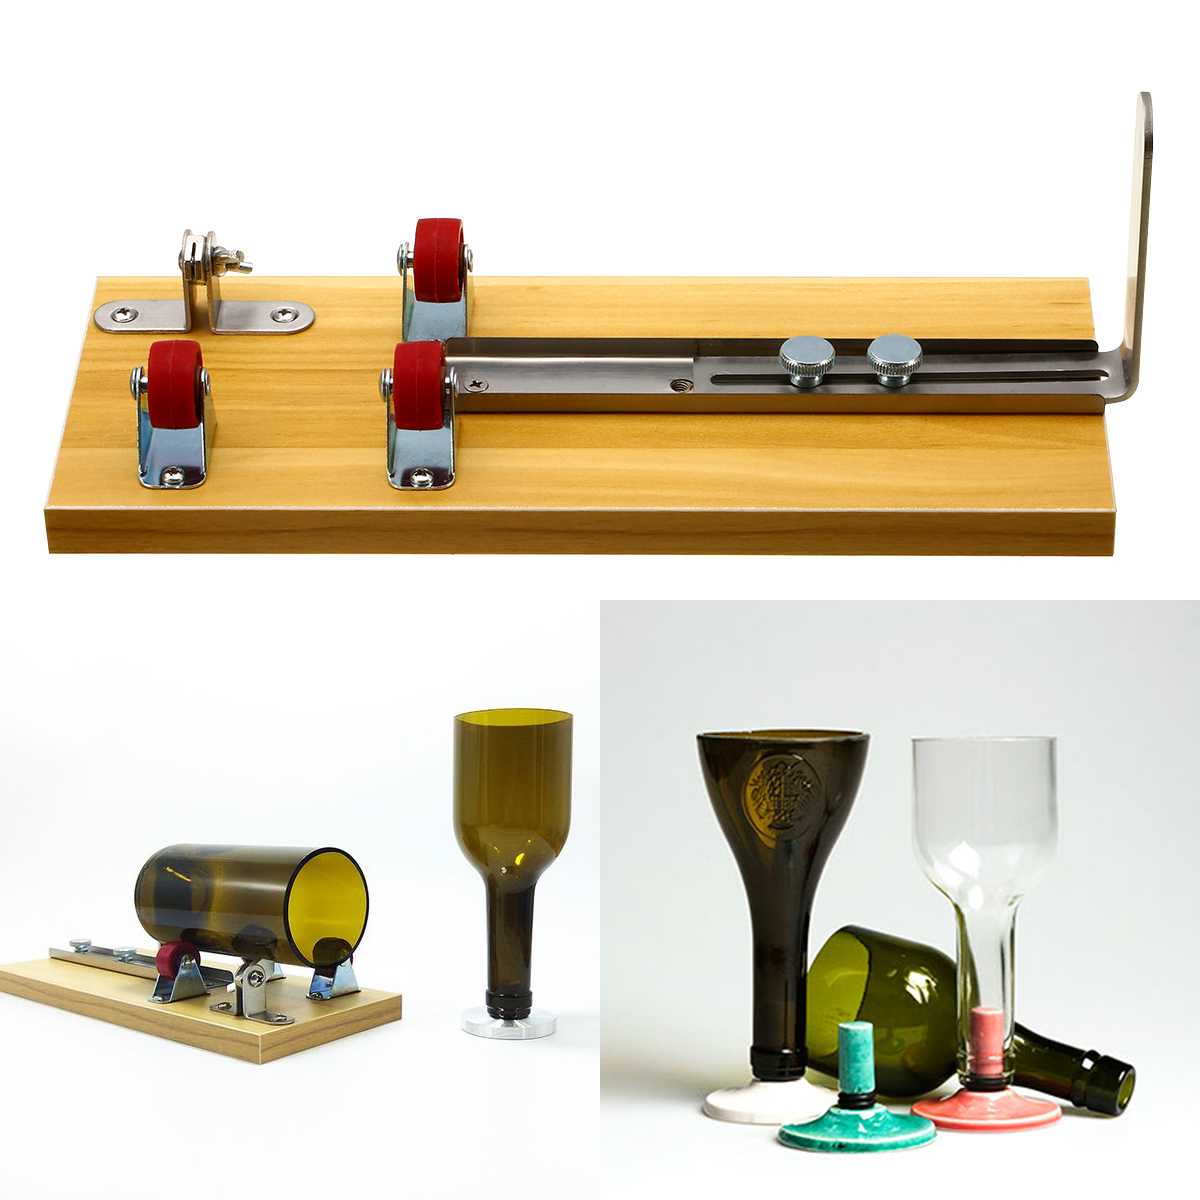 Hot Sale DIY Glass Cutter Bottle Cutter Tool For Wine Beer Bottle Cutting Professional Cutter Machine Mayitr High Quality newest graphtec cb09 silhouette cameo holder 15pcs blades vinyl cutter plotter 30 degree hot sale